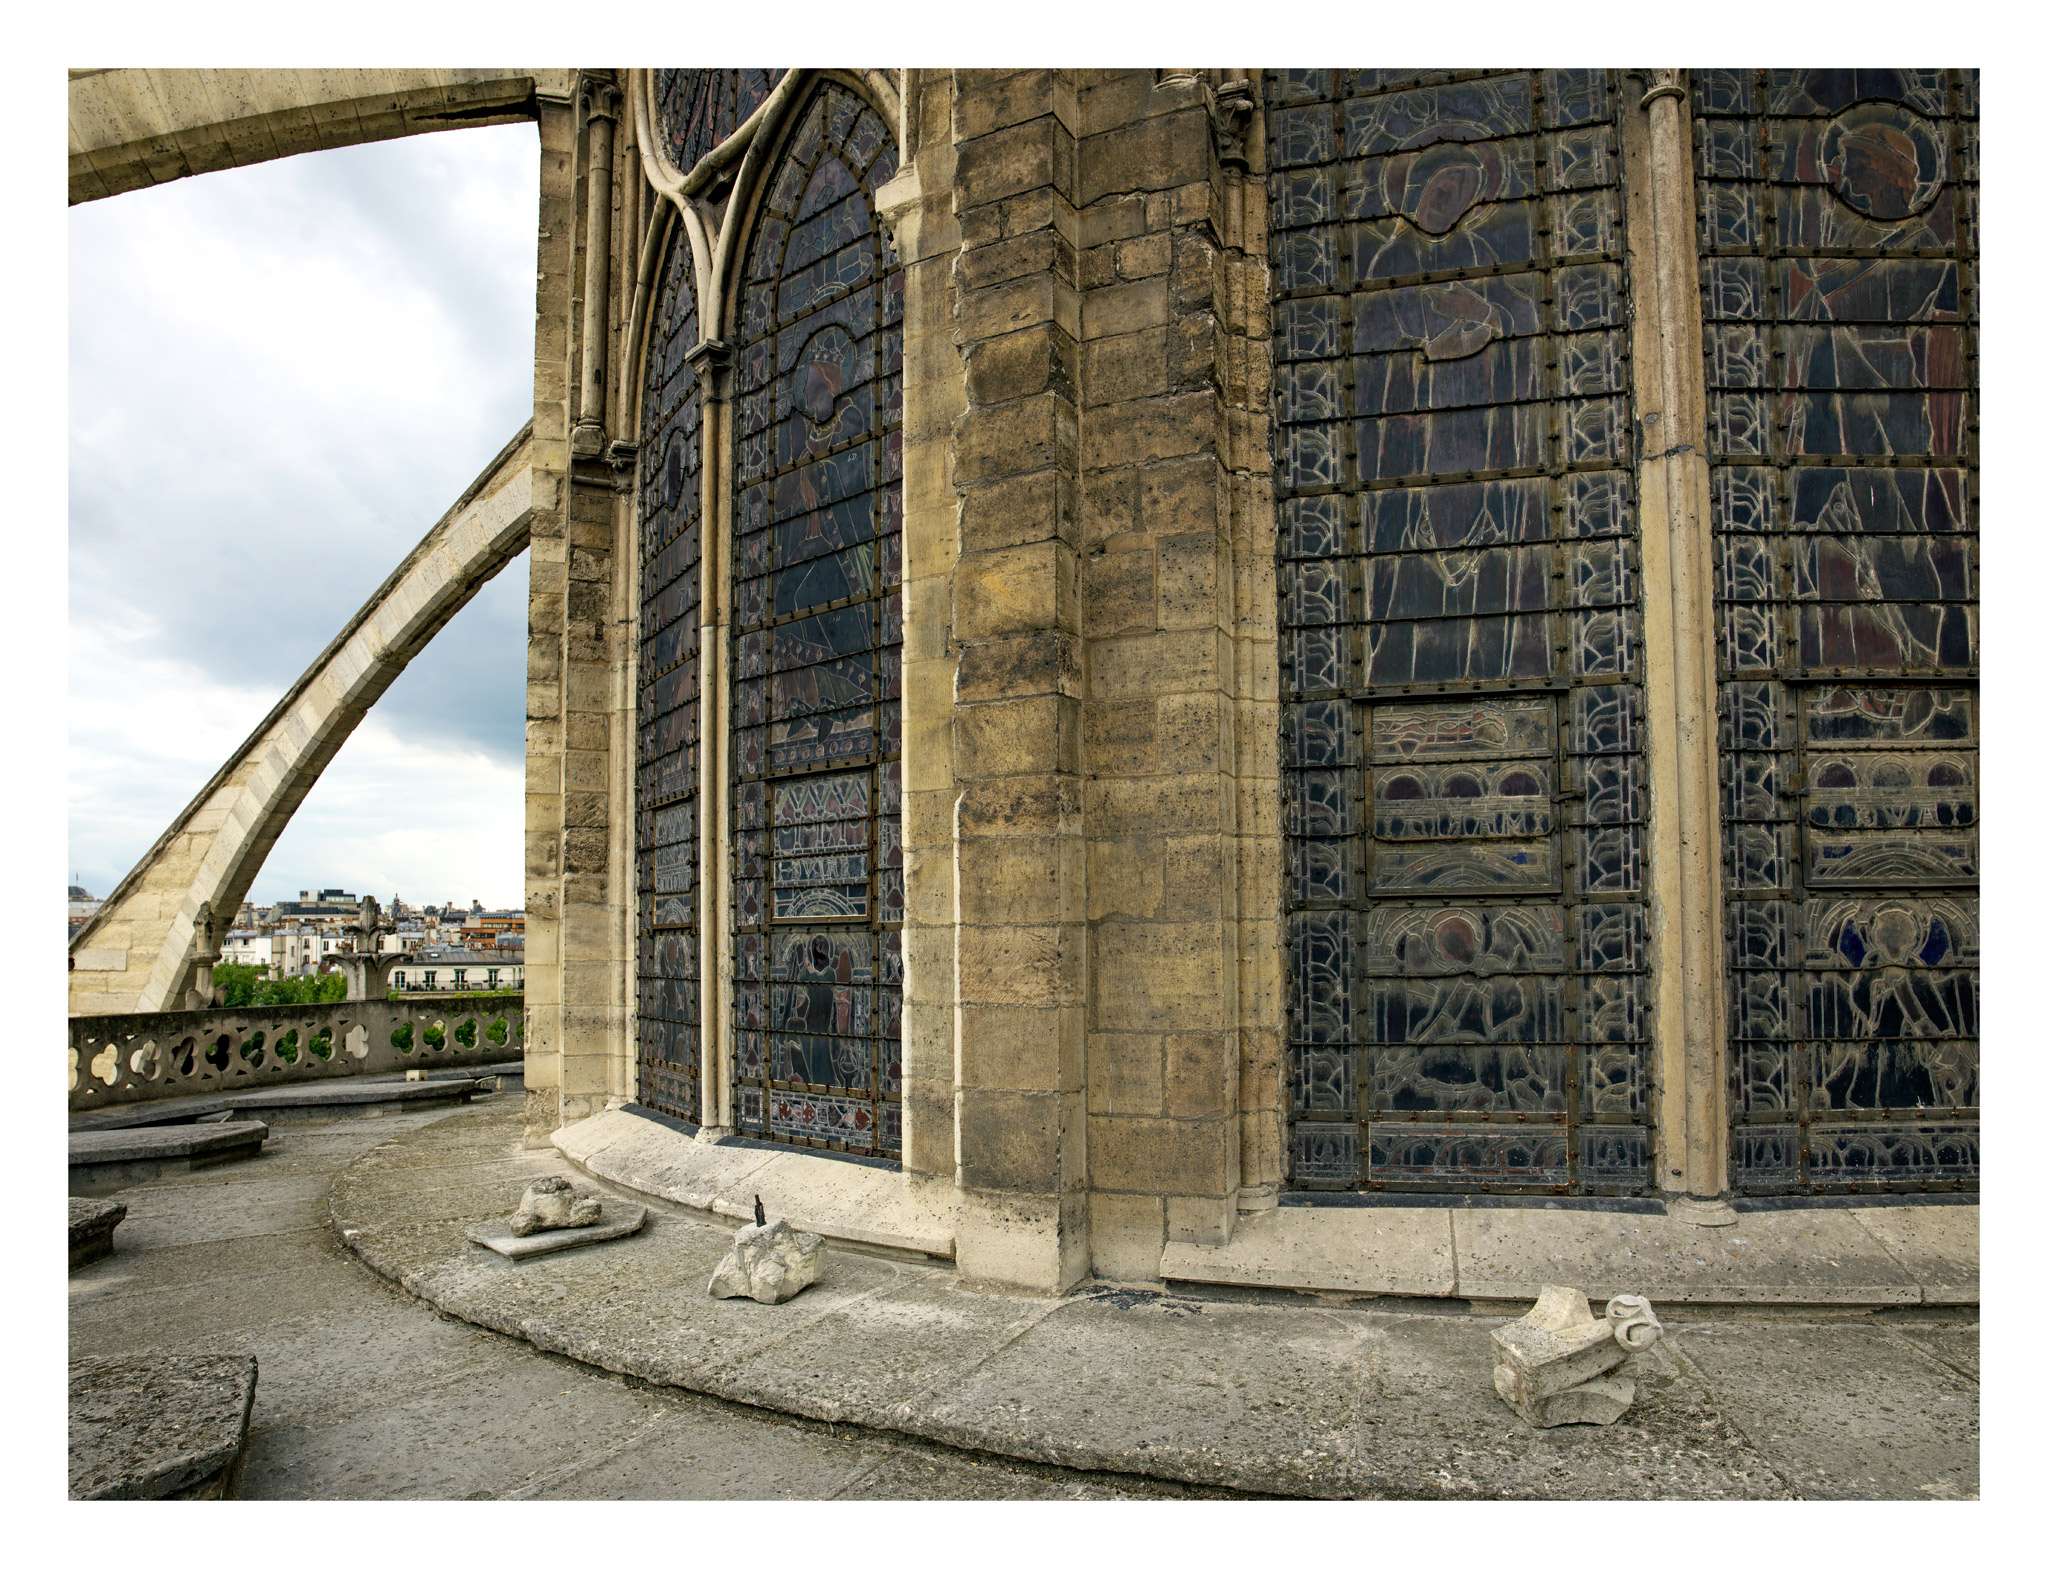 Stonework has fallen from Notre Dame cathedral in Paris. Low-quality stone and cement were used in a restoration in 1844. Nearly 200 years on, that 19th century work is crumbling (though some of the painstaking medieval construction is in better shape).